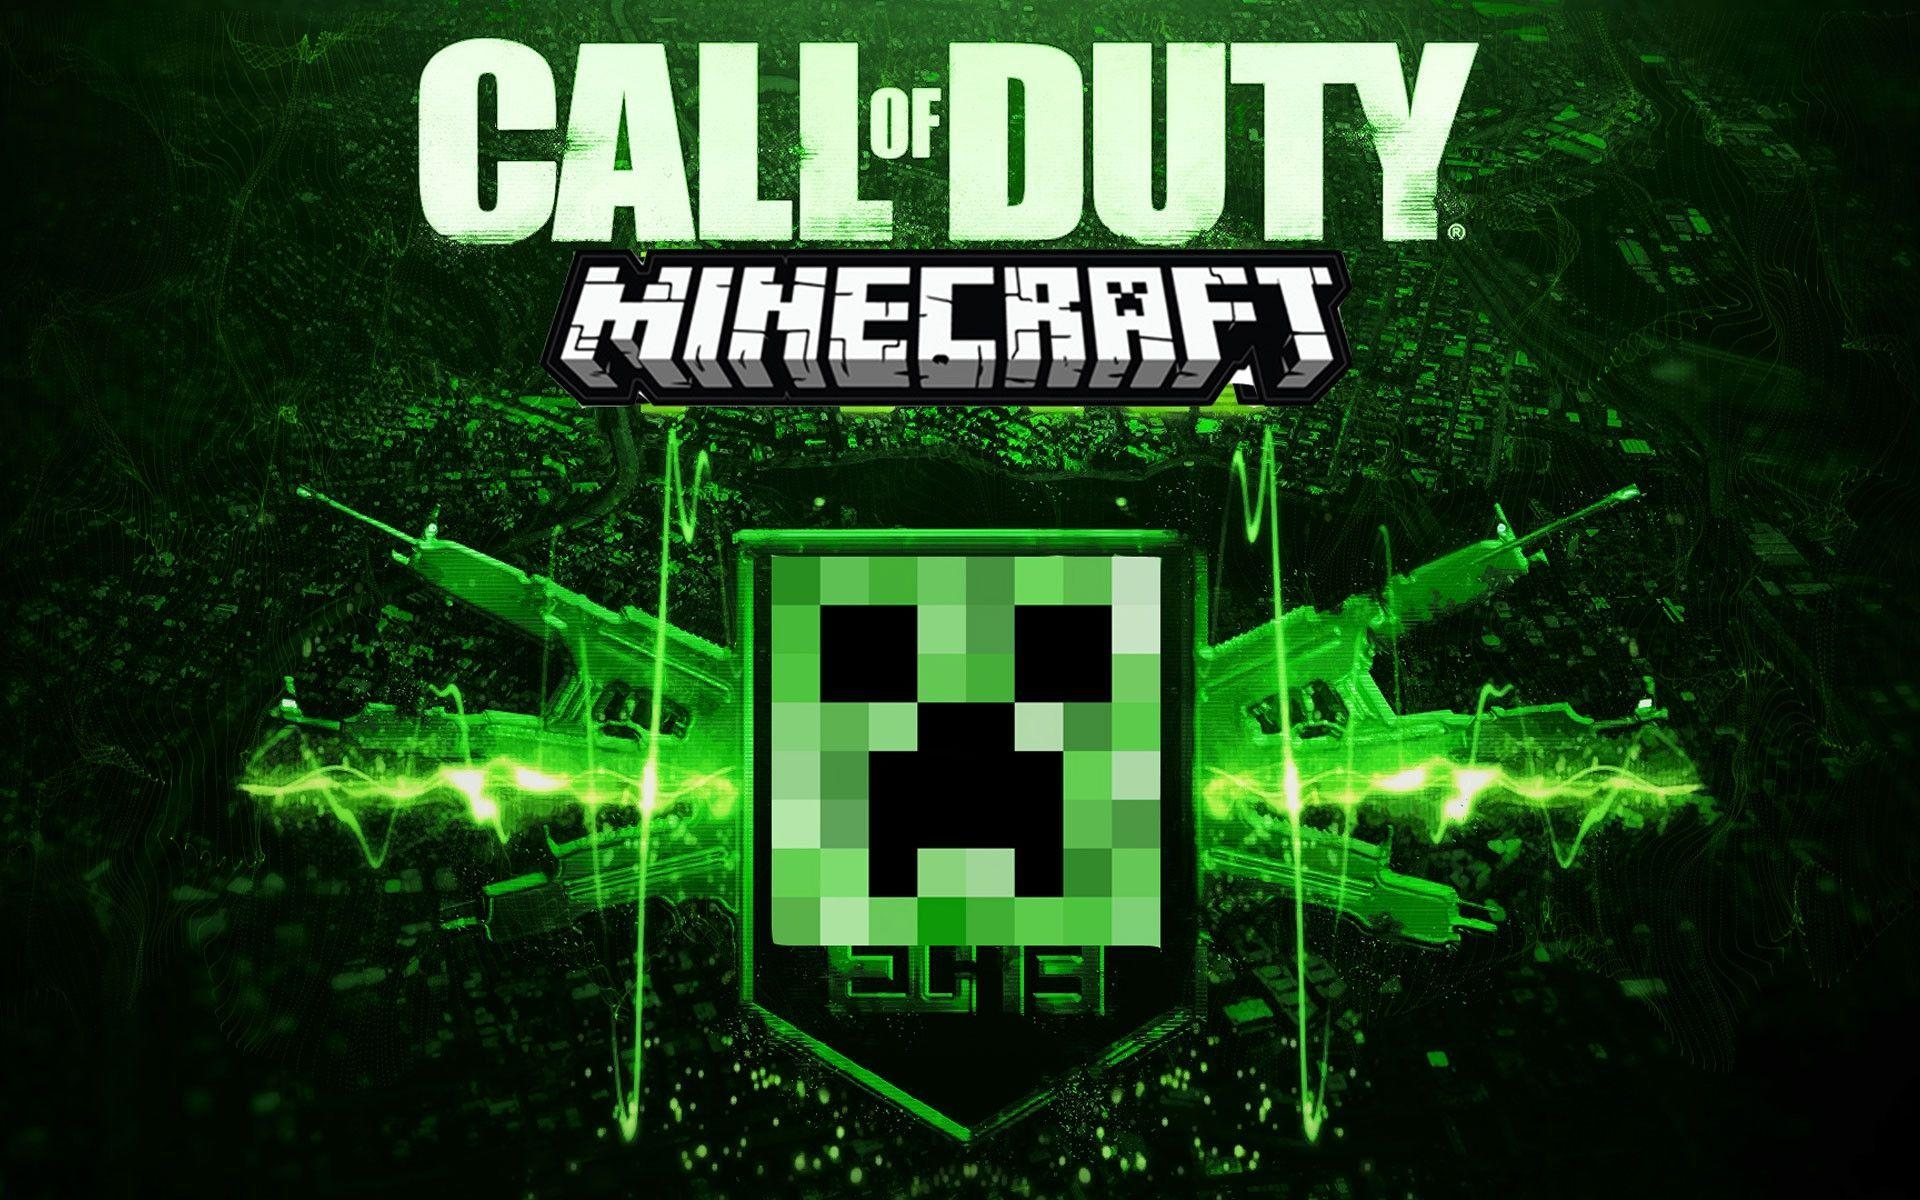 Really Cool Minecraft Backgrounds